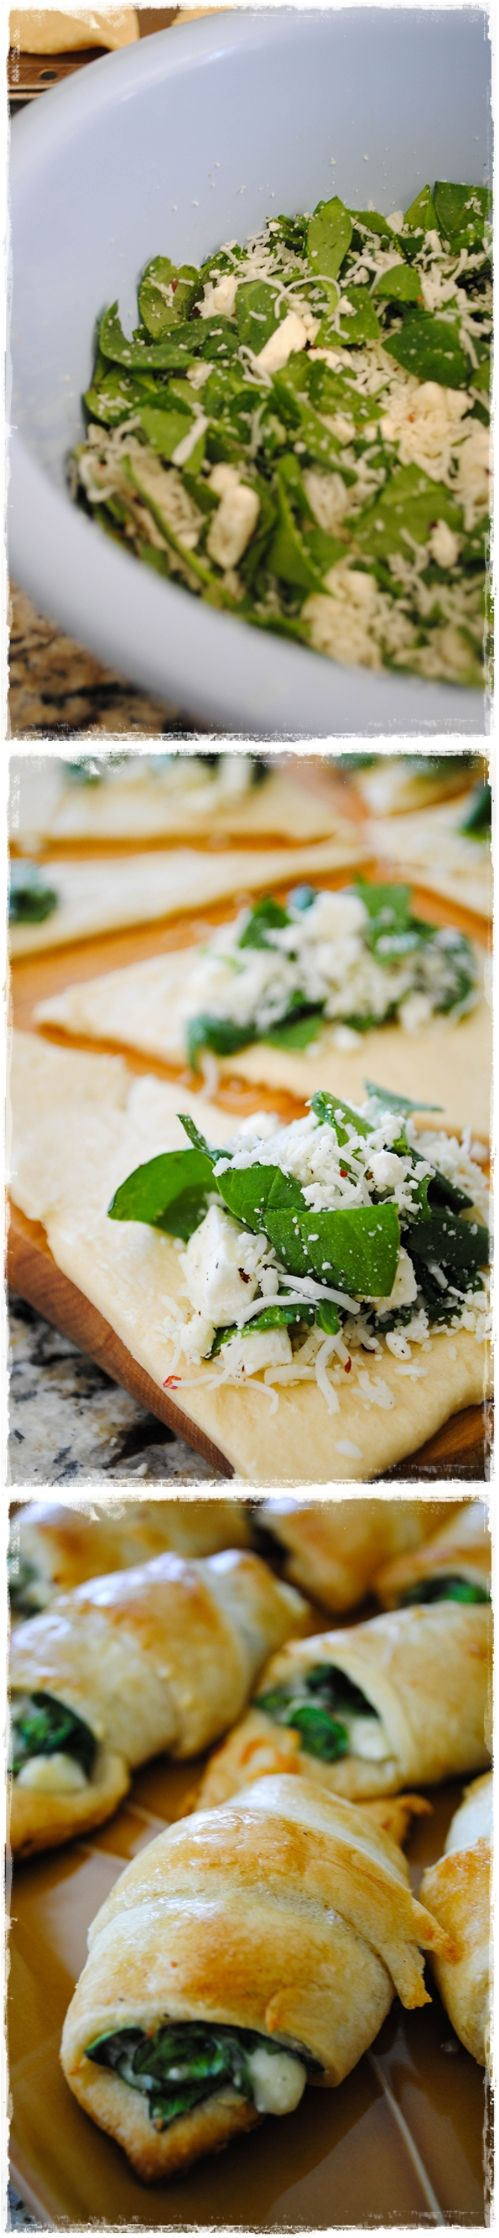 Cheesy Spinach Crescent Rolls | Lidia's Secret Recipes